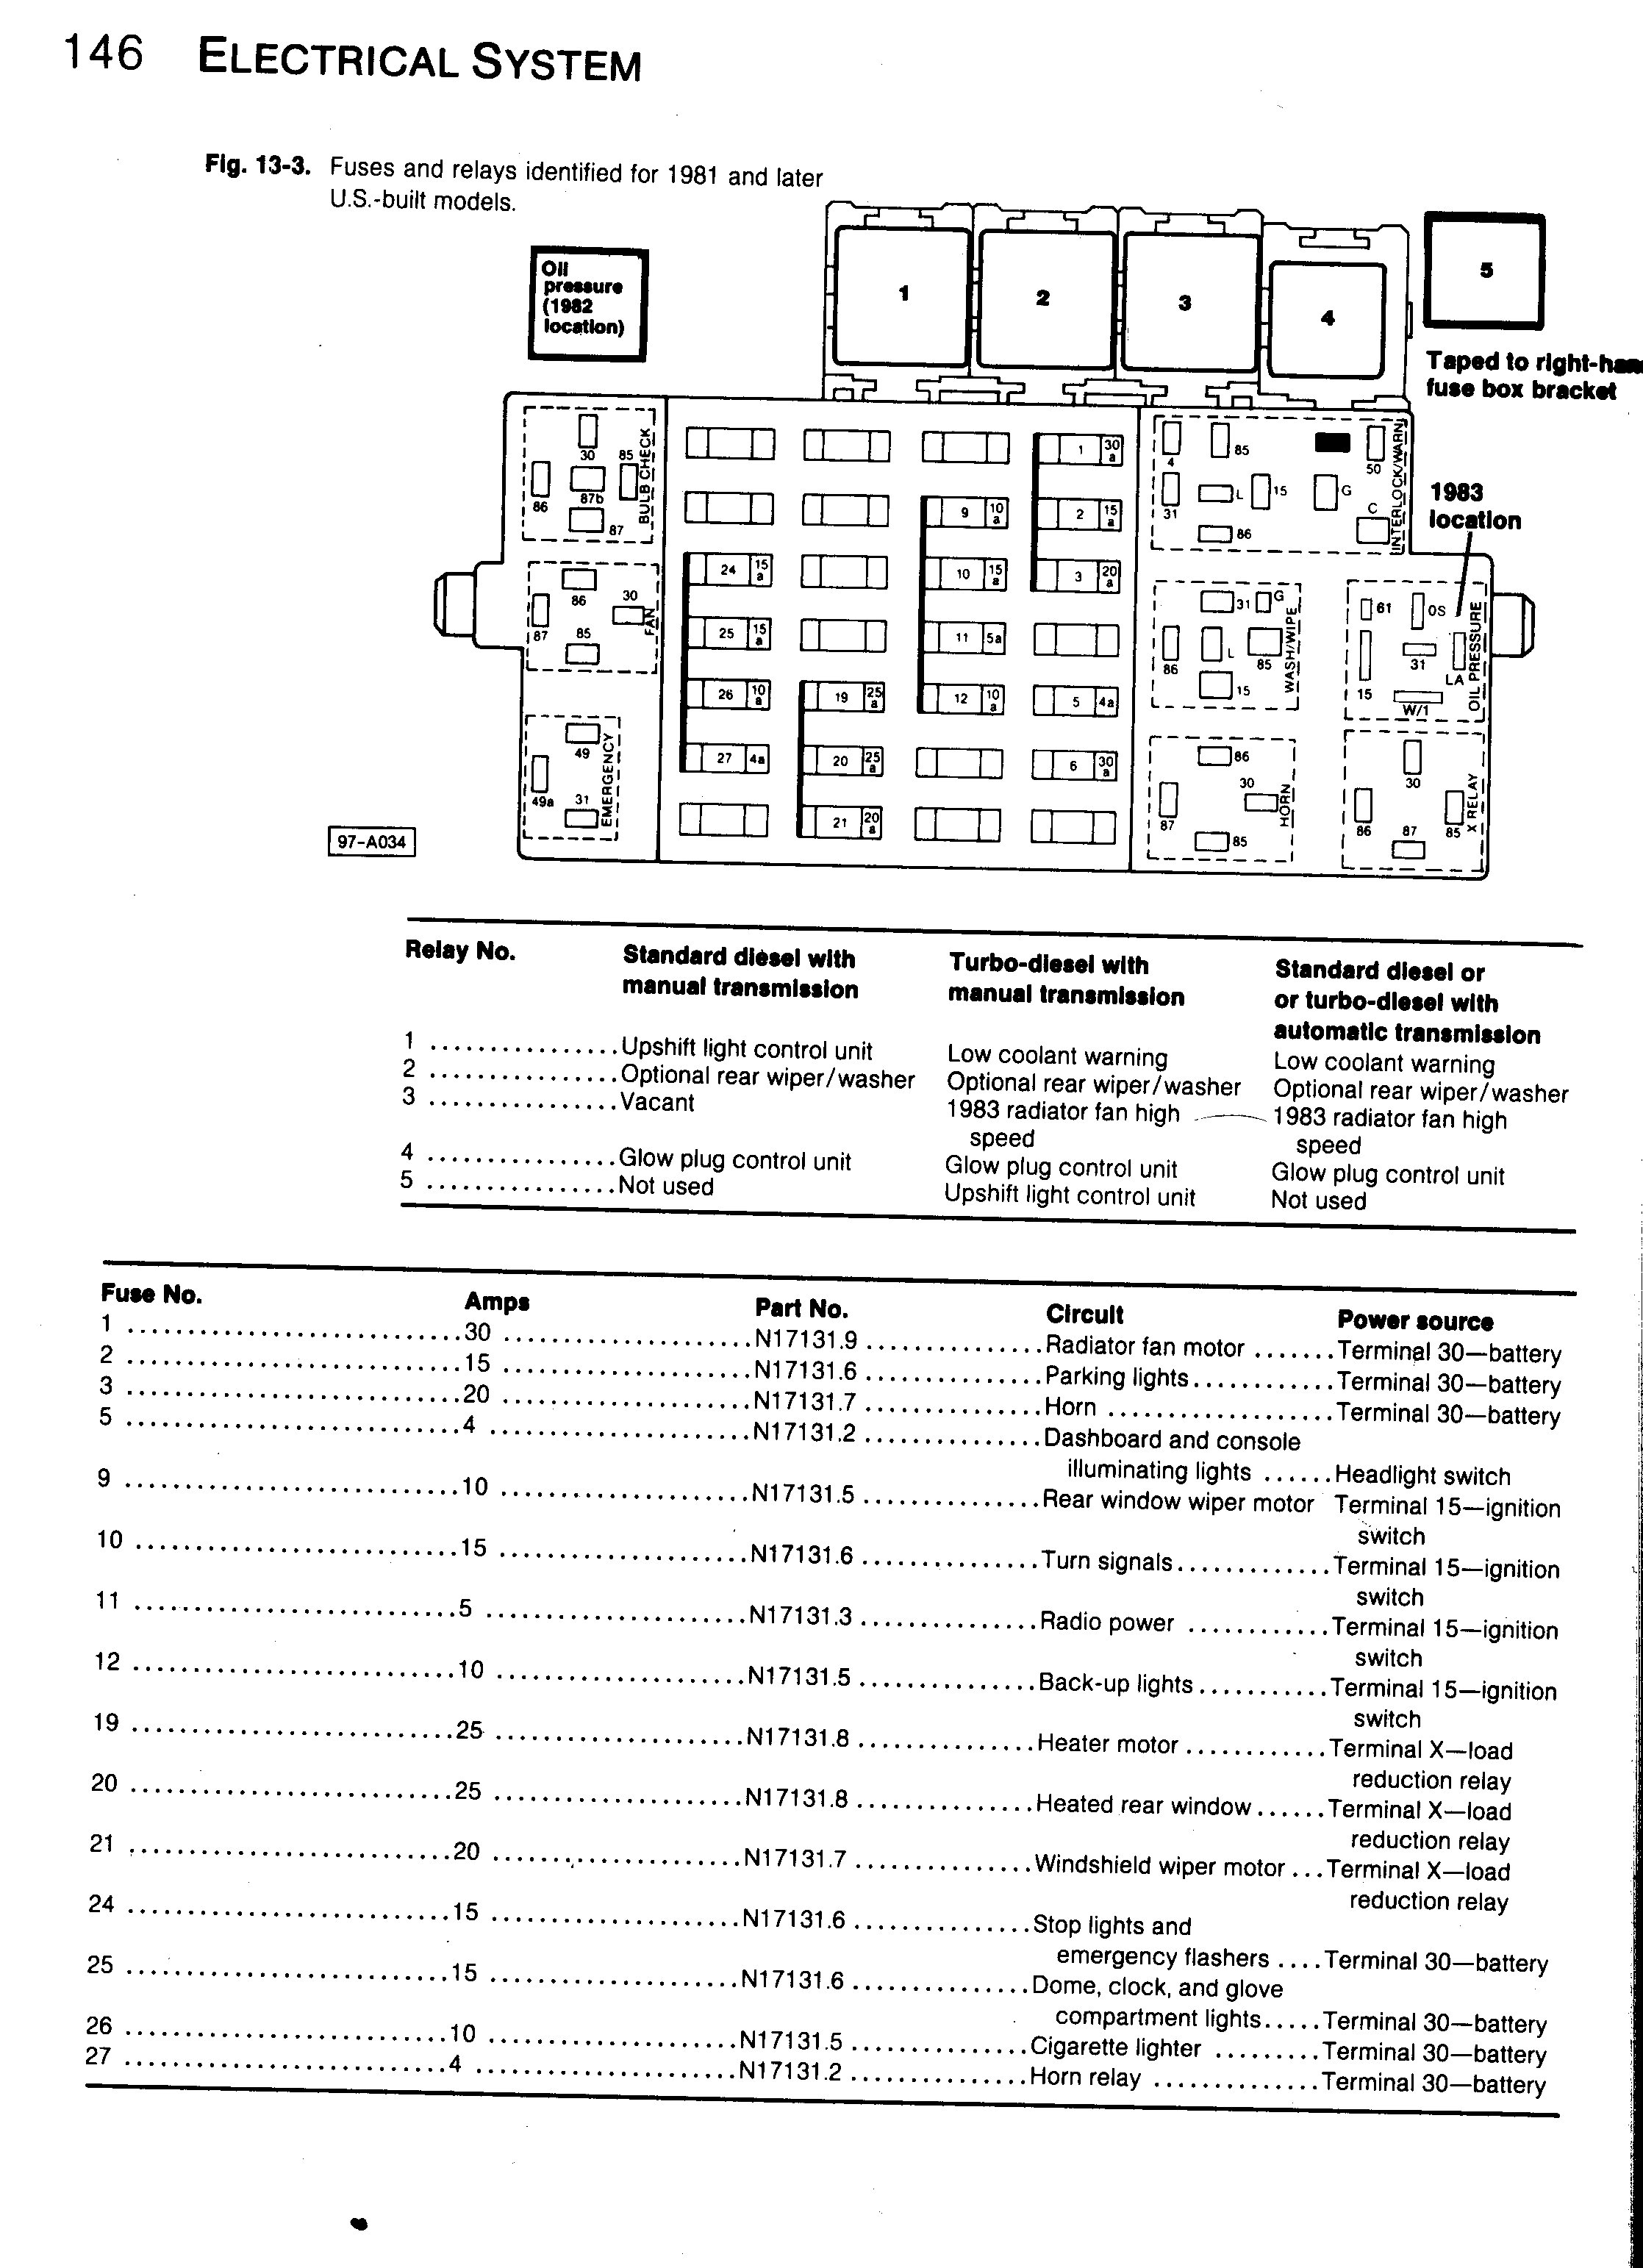 2006 Vw Jetta 2.5 Fuse Box Diagram